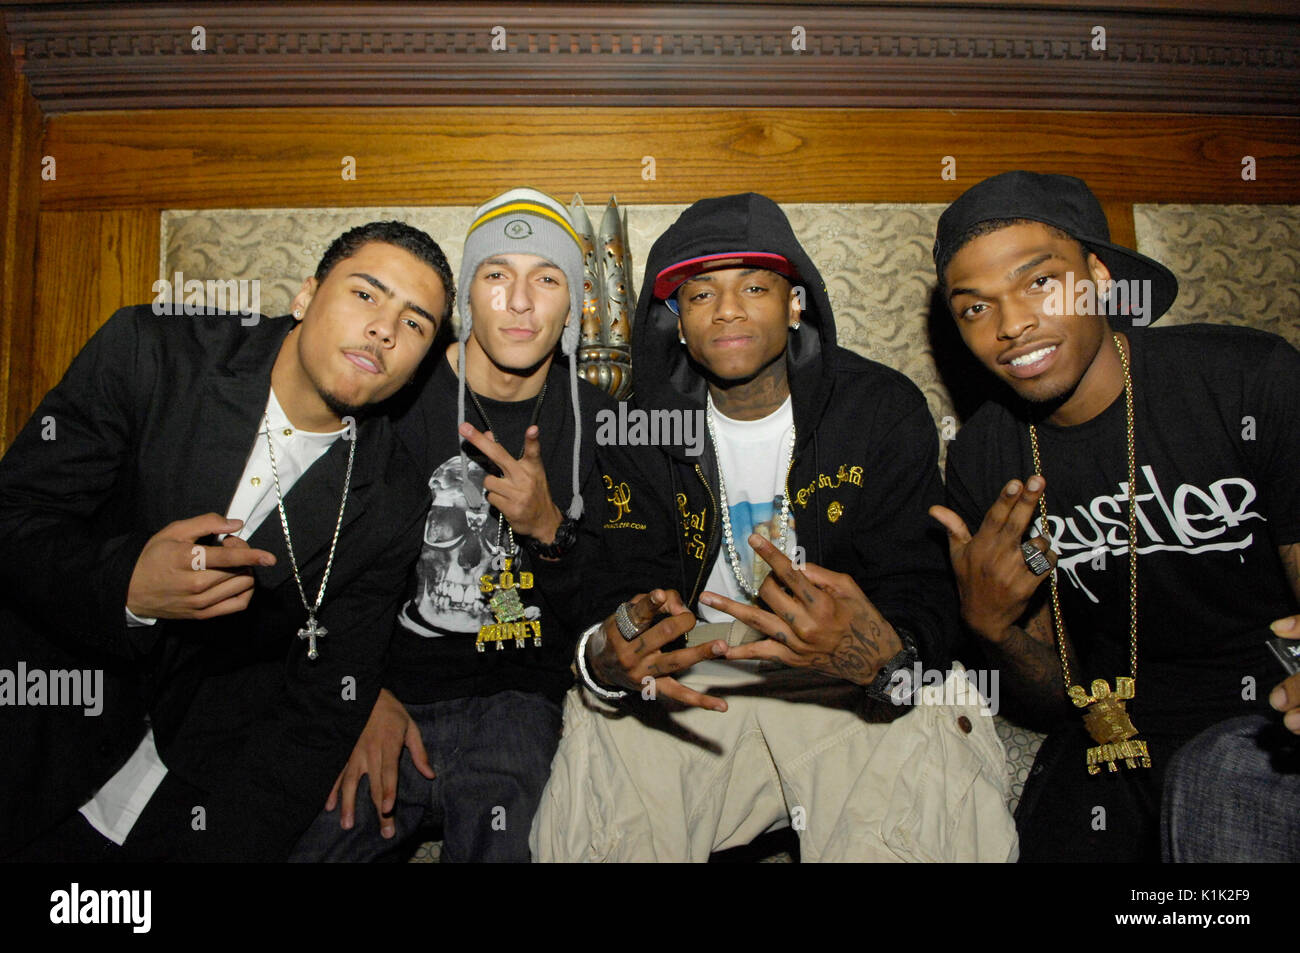 (L-R) Quincy 'IQ' Brown,Khleo Thomas,Soulja Boy Tell 'Em,JBar Pig N' Whistle for 'This is My IQ' Mixtape release party Los Angeles. - Stock Image